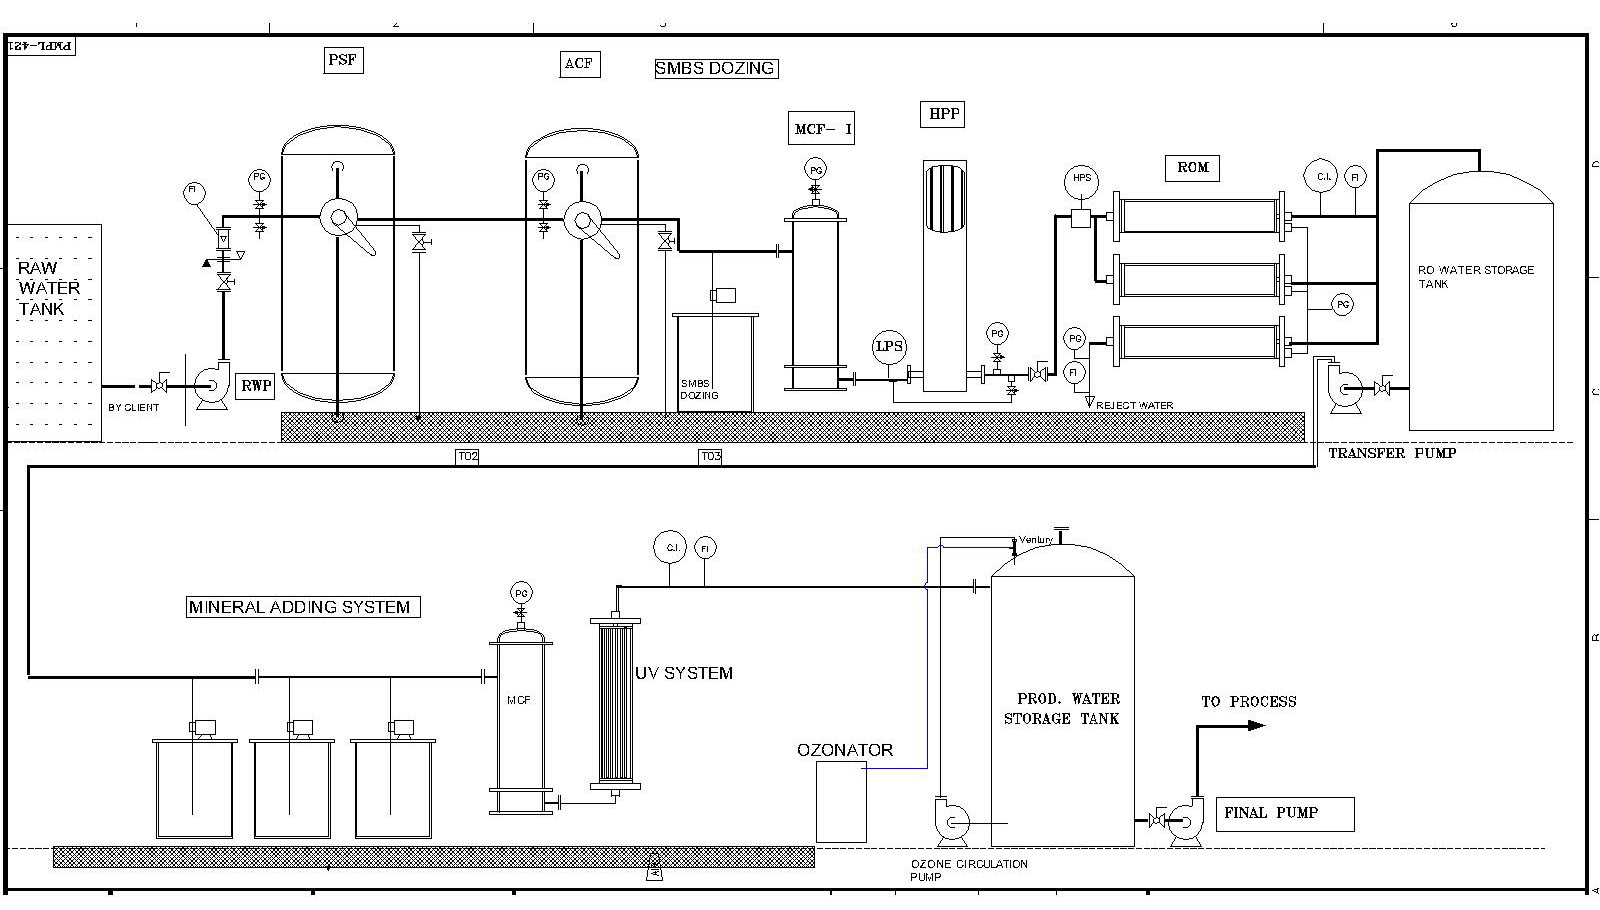 Probe reverse osmosis water purification plant working diagram nvjuhfo Image collections